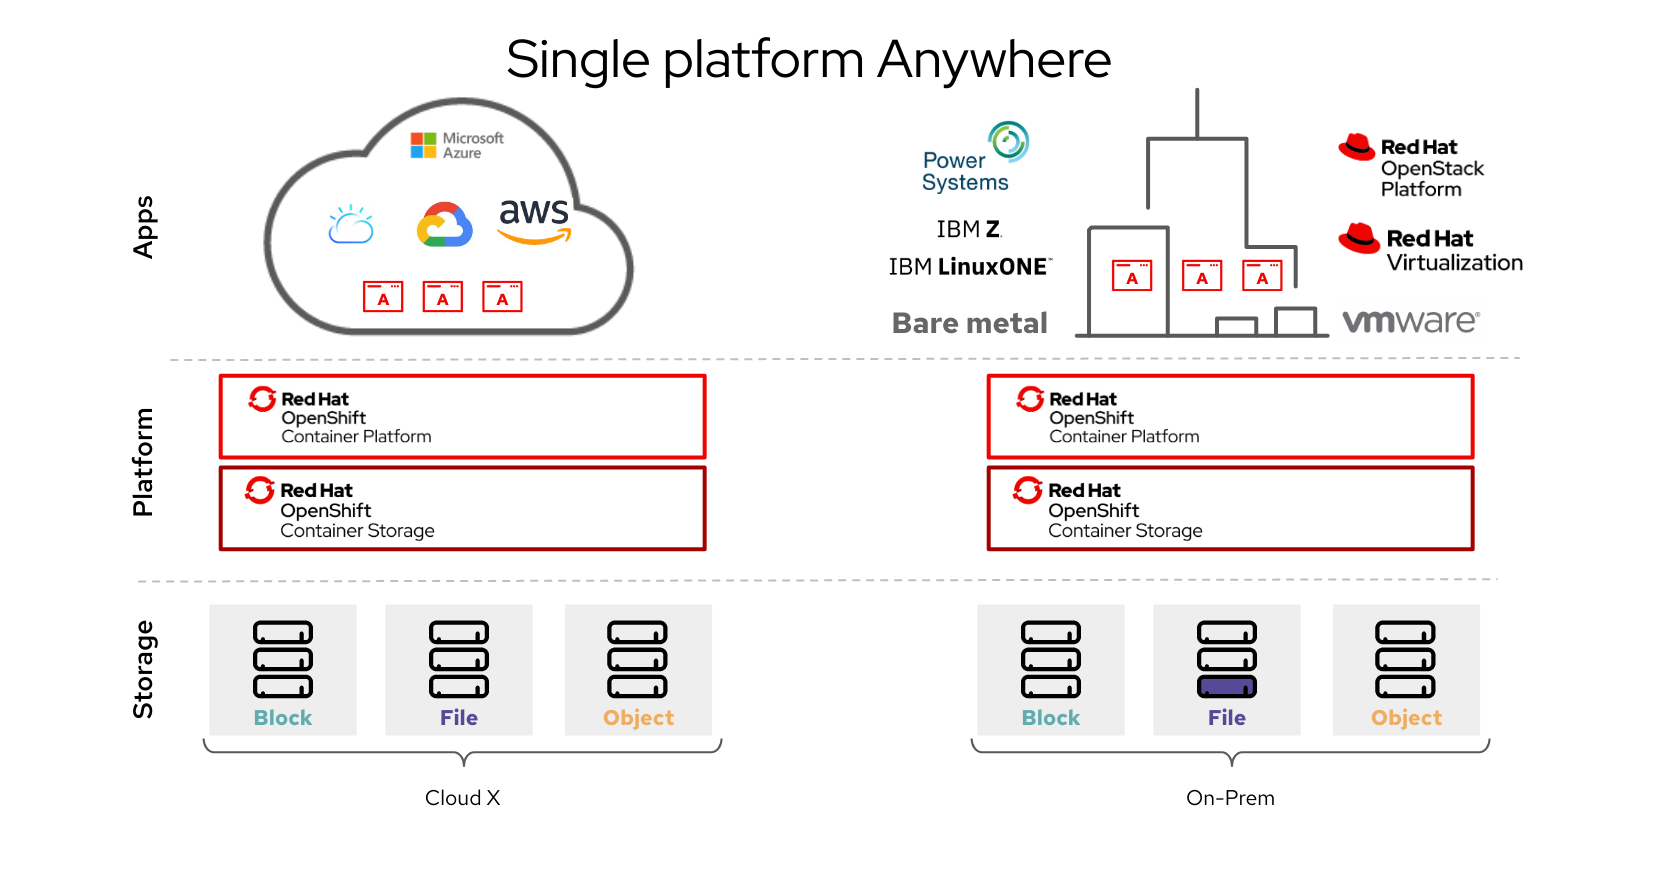 Red Hat OpenShift Container Storage architecture